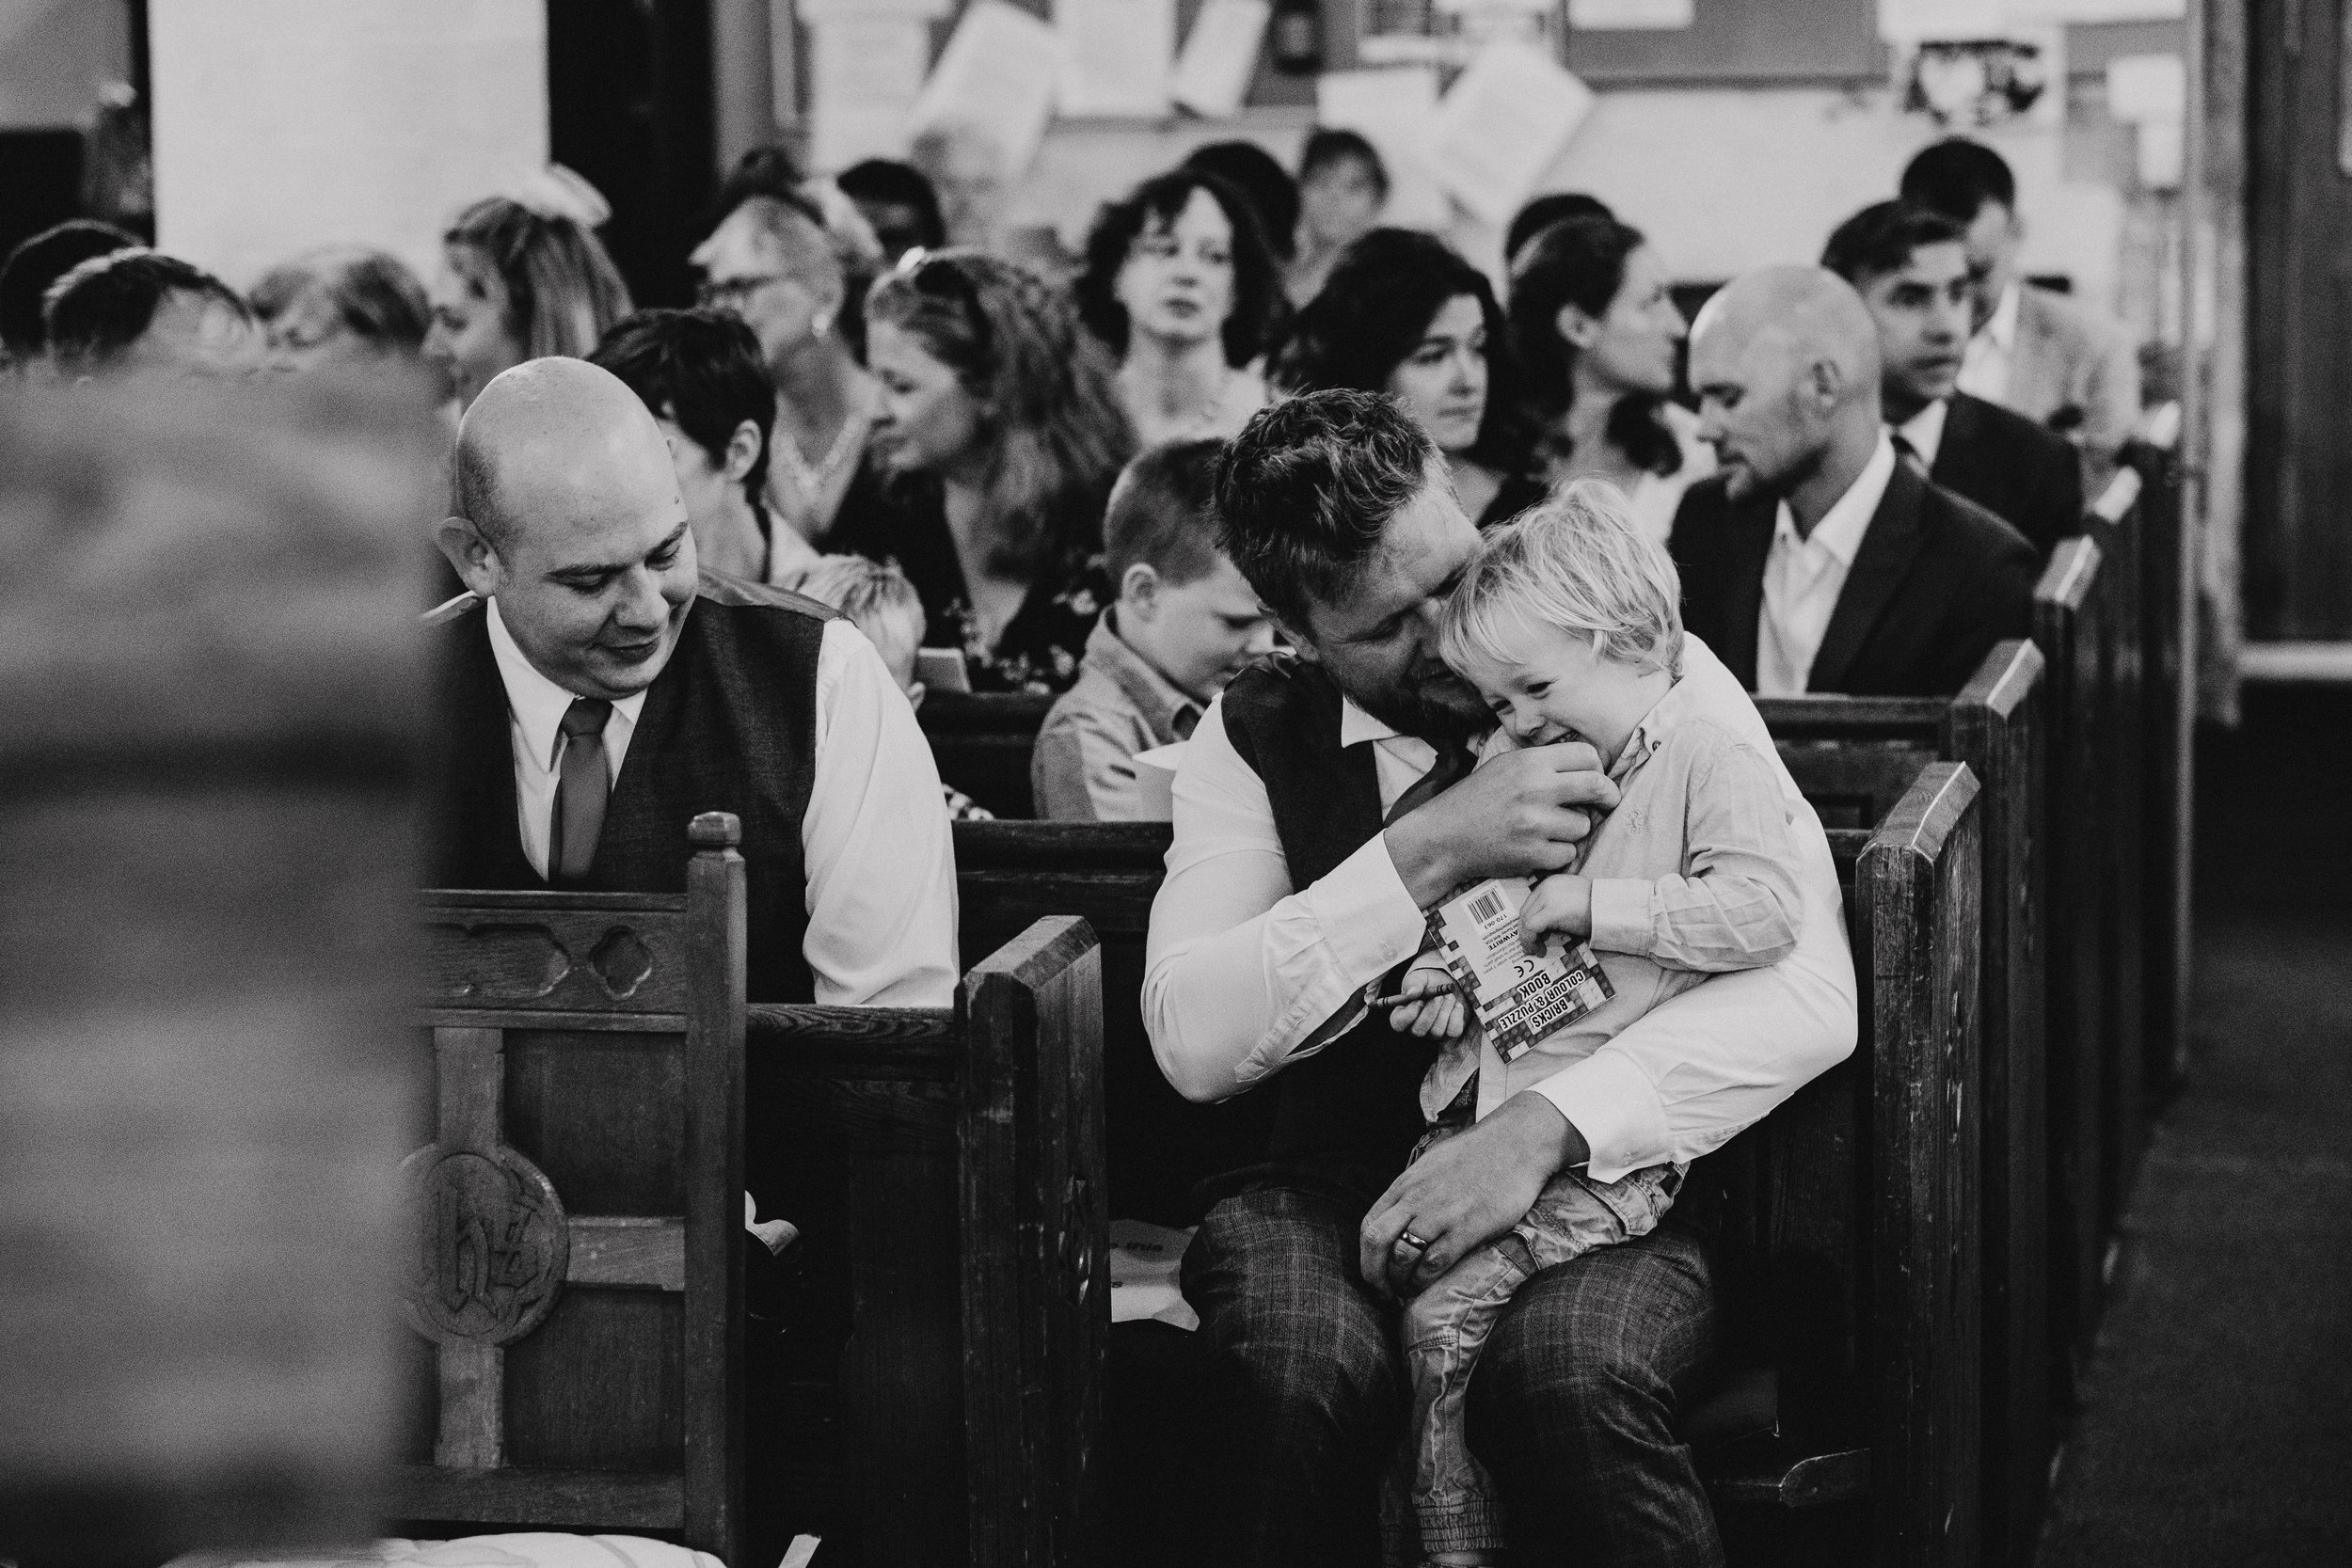 Kids being cute at a wedding